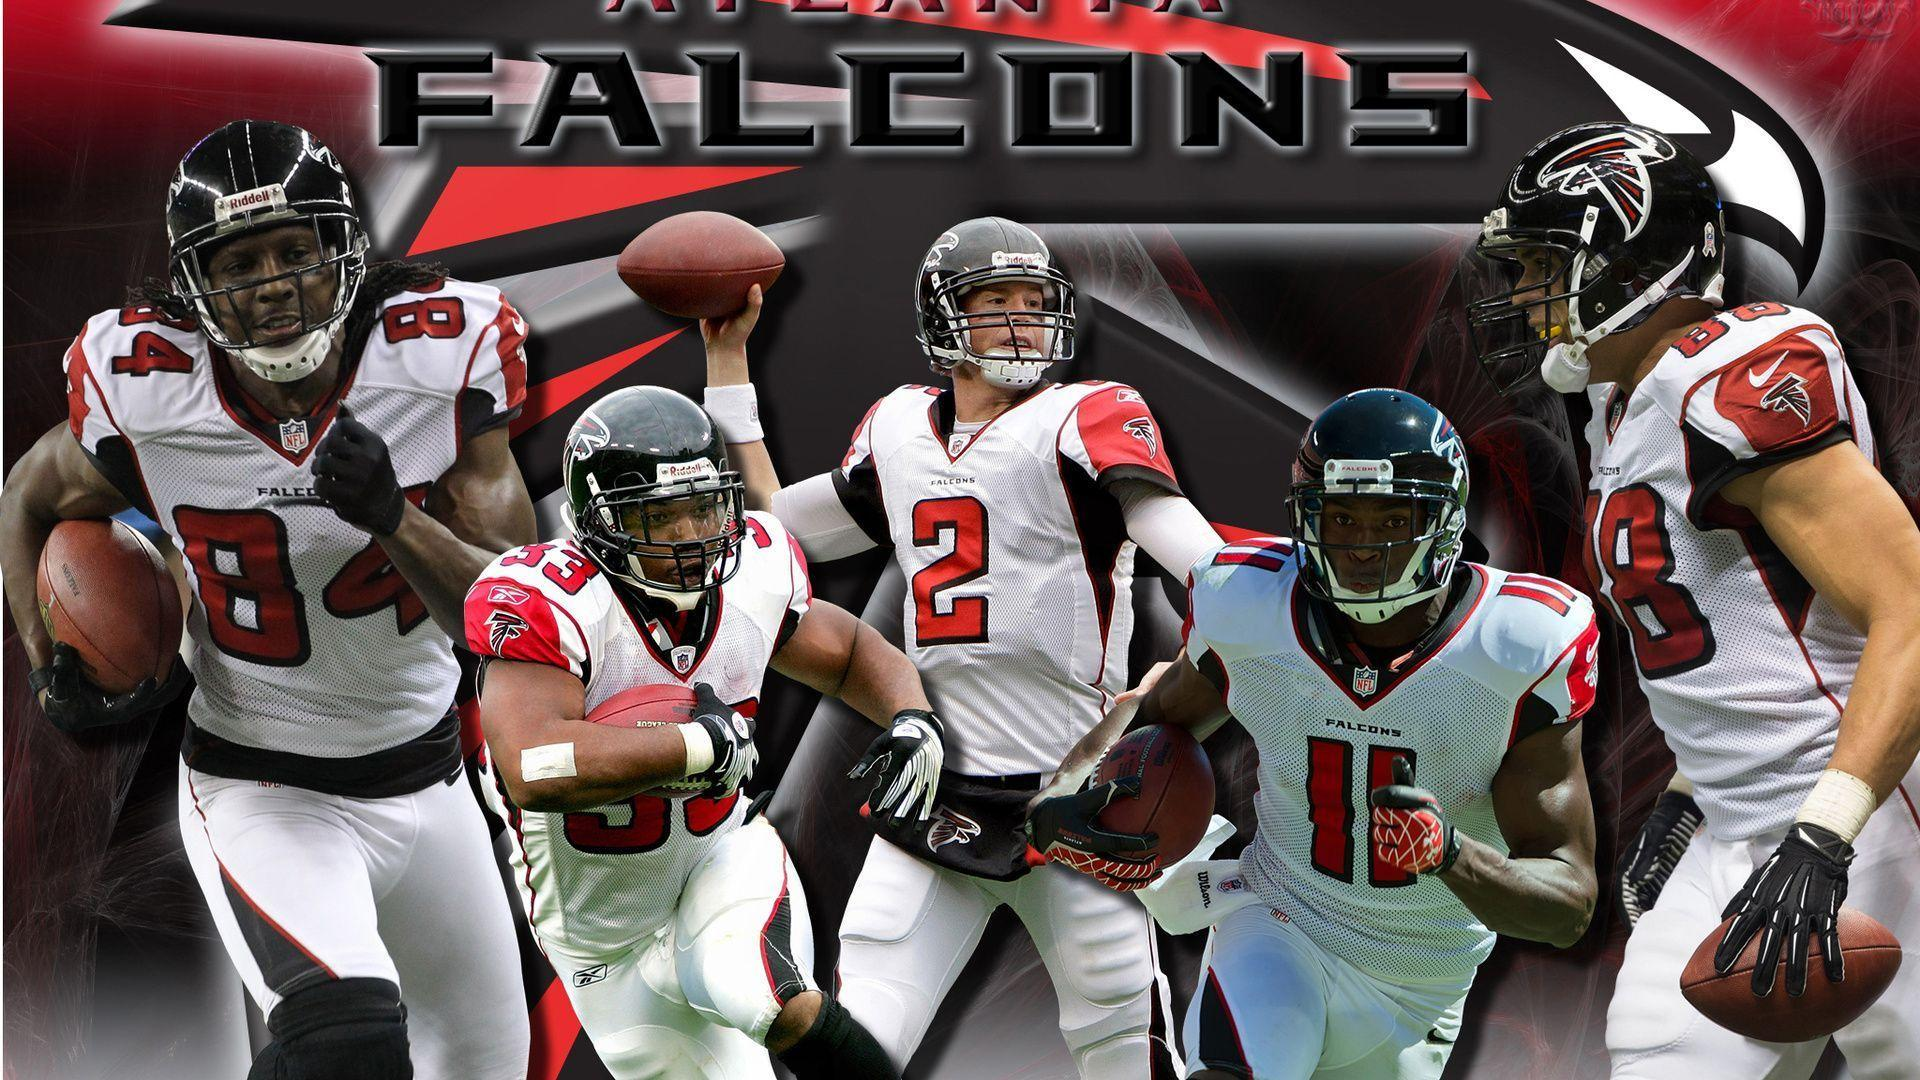 1920x1080 Nfl, Atlanta Falcons Nfl Team Players Poster, Sports